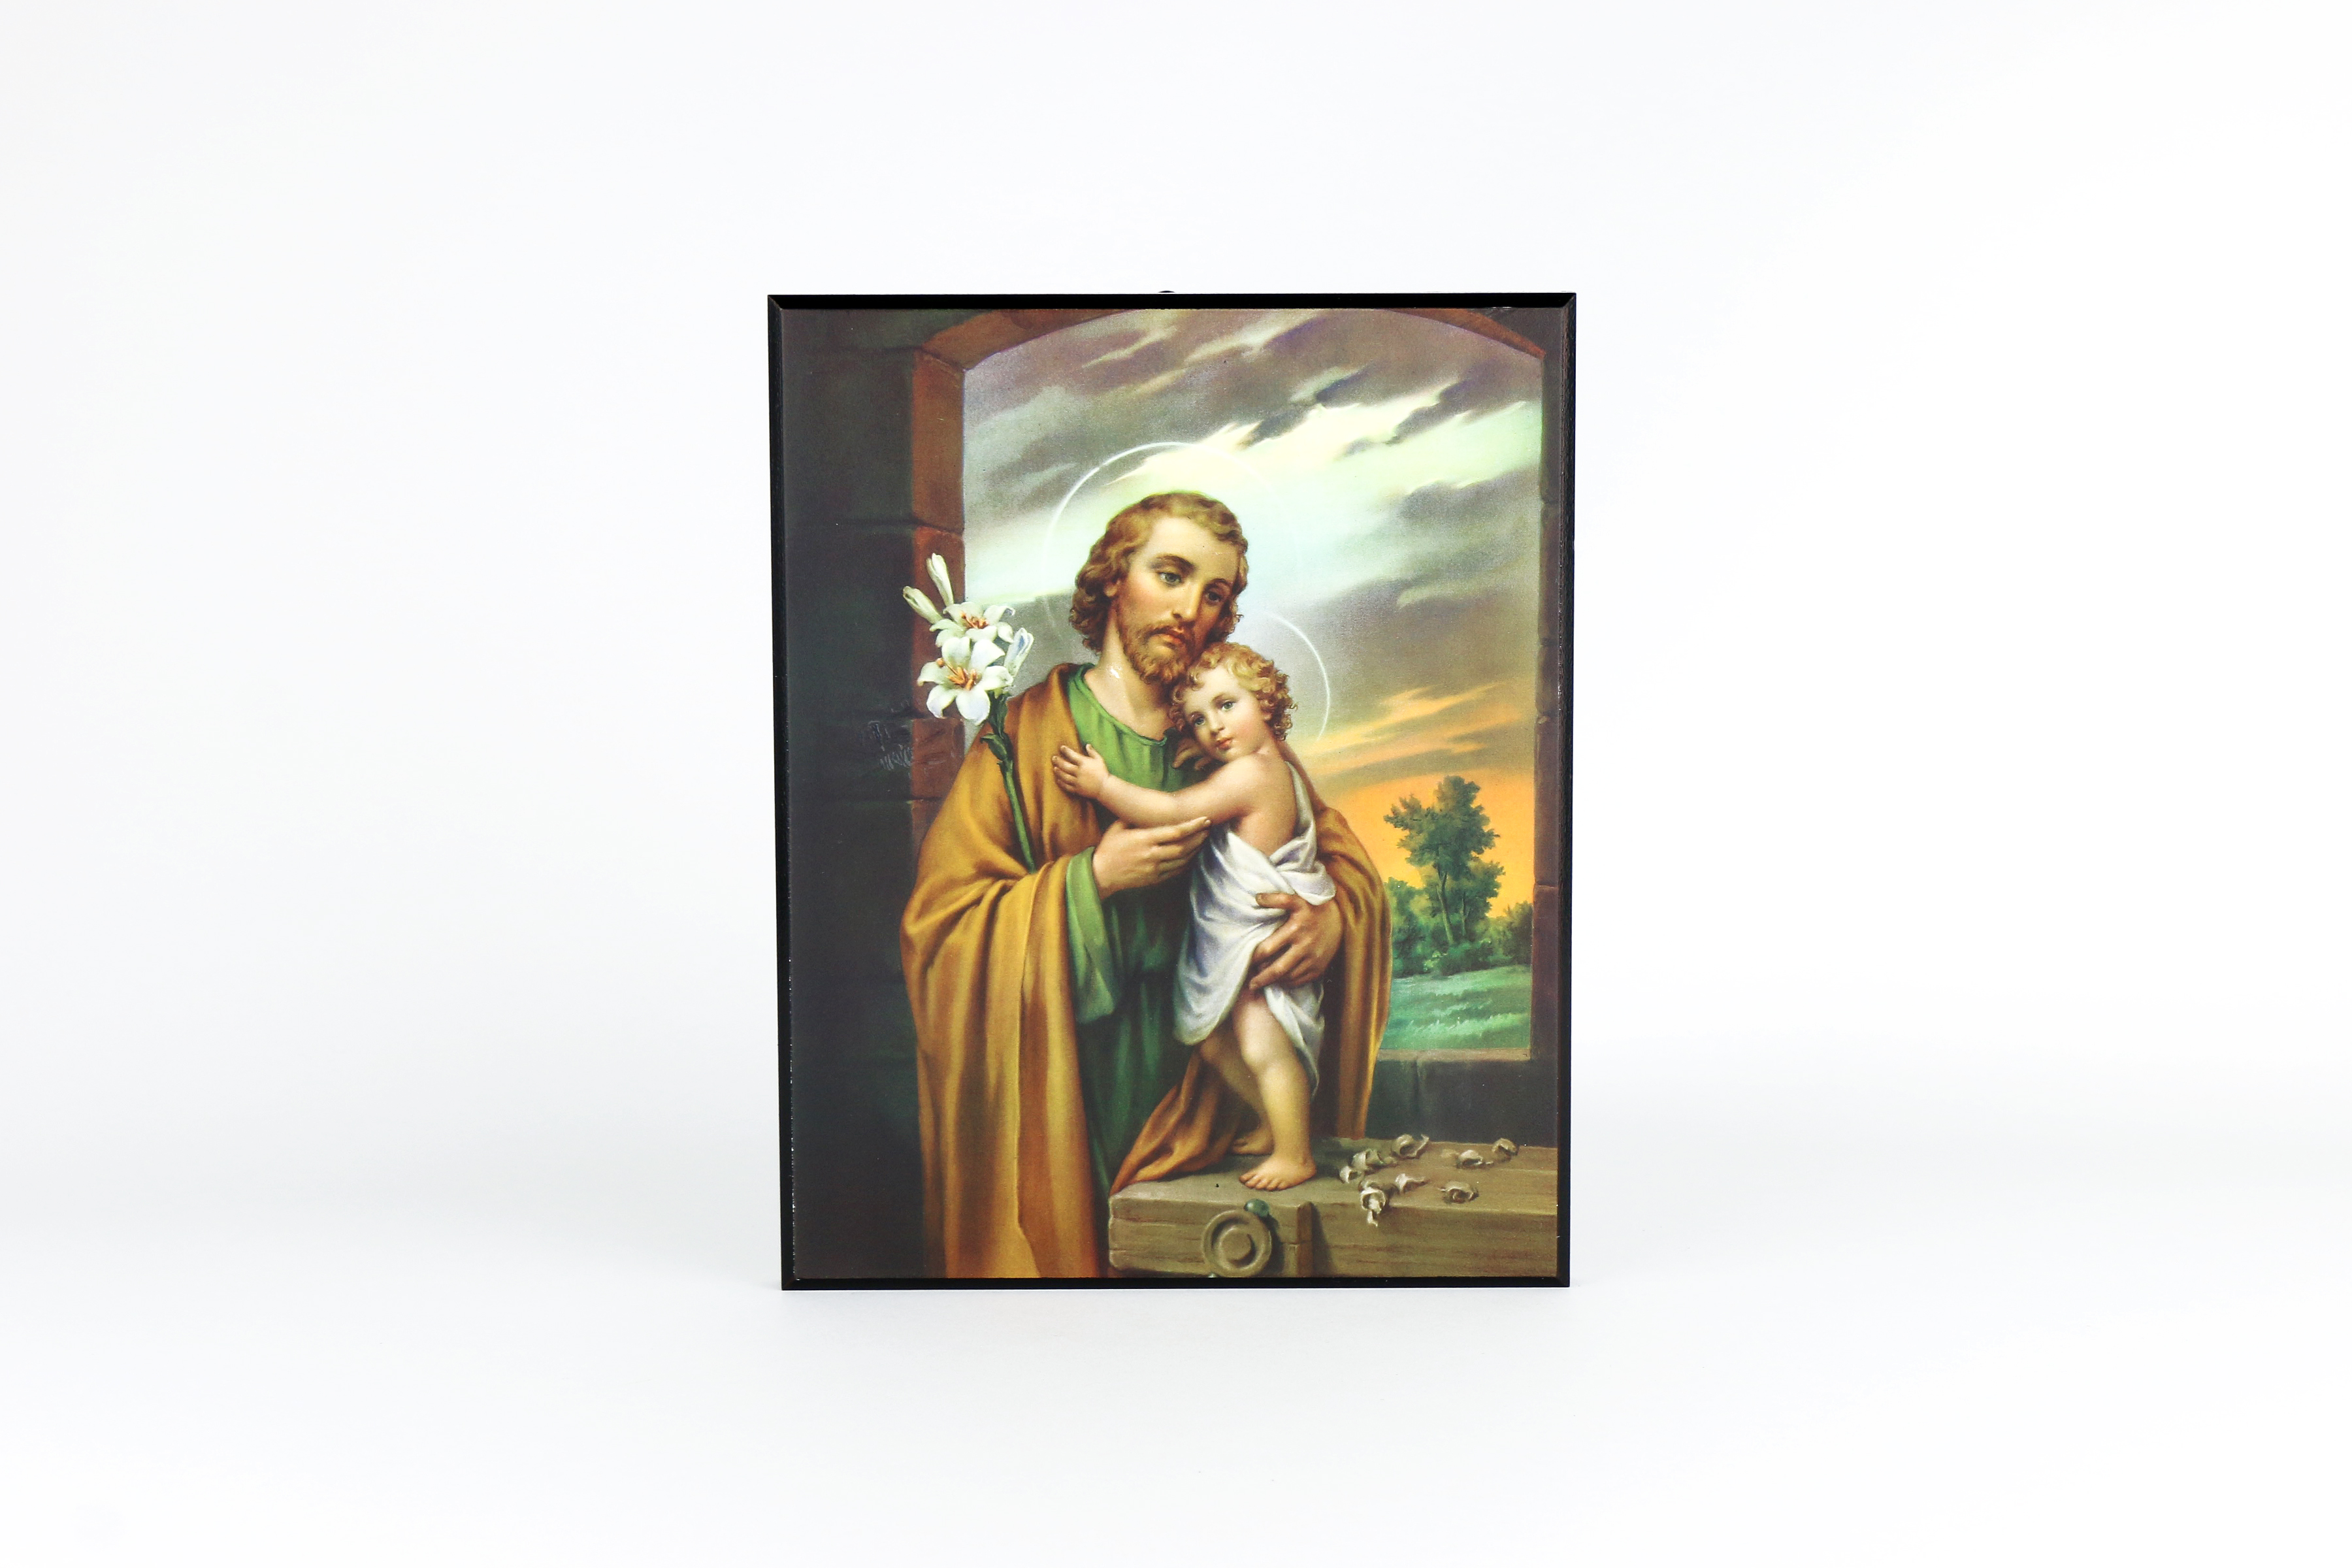 Joseph Und Joseph Plaque Of Saint Joseph And The Infant Christ